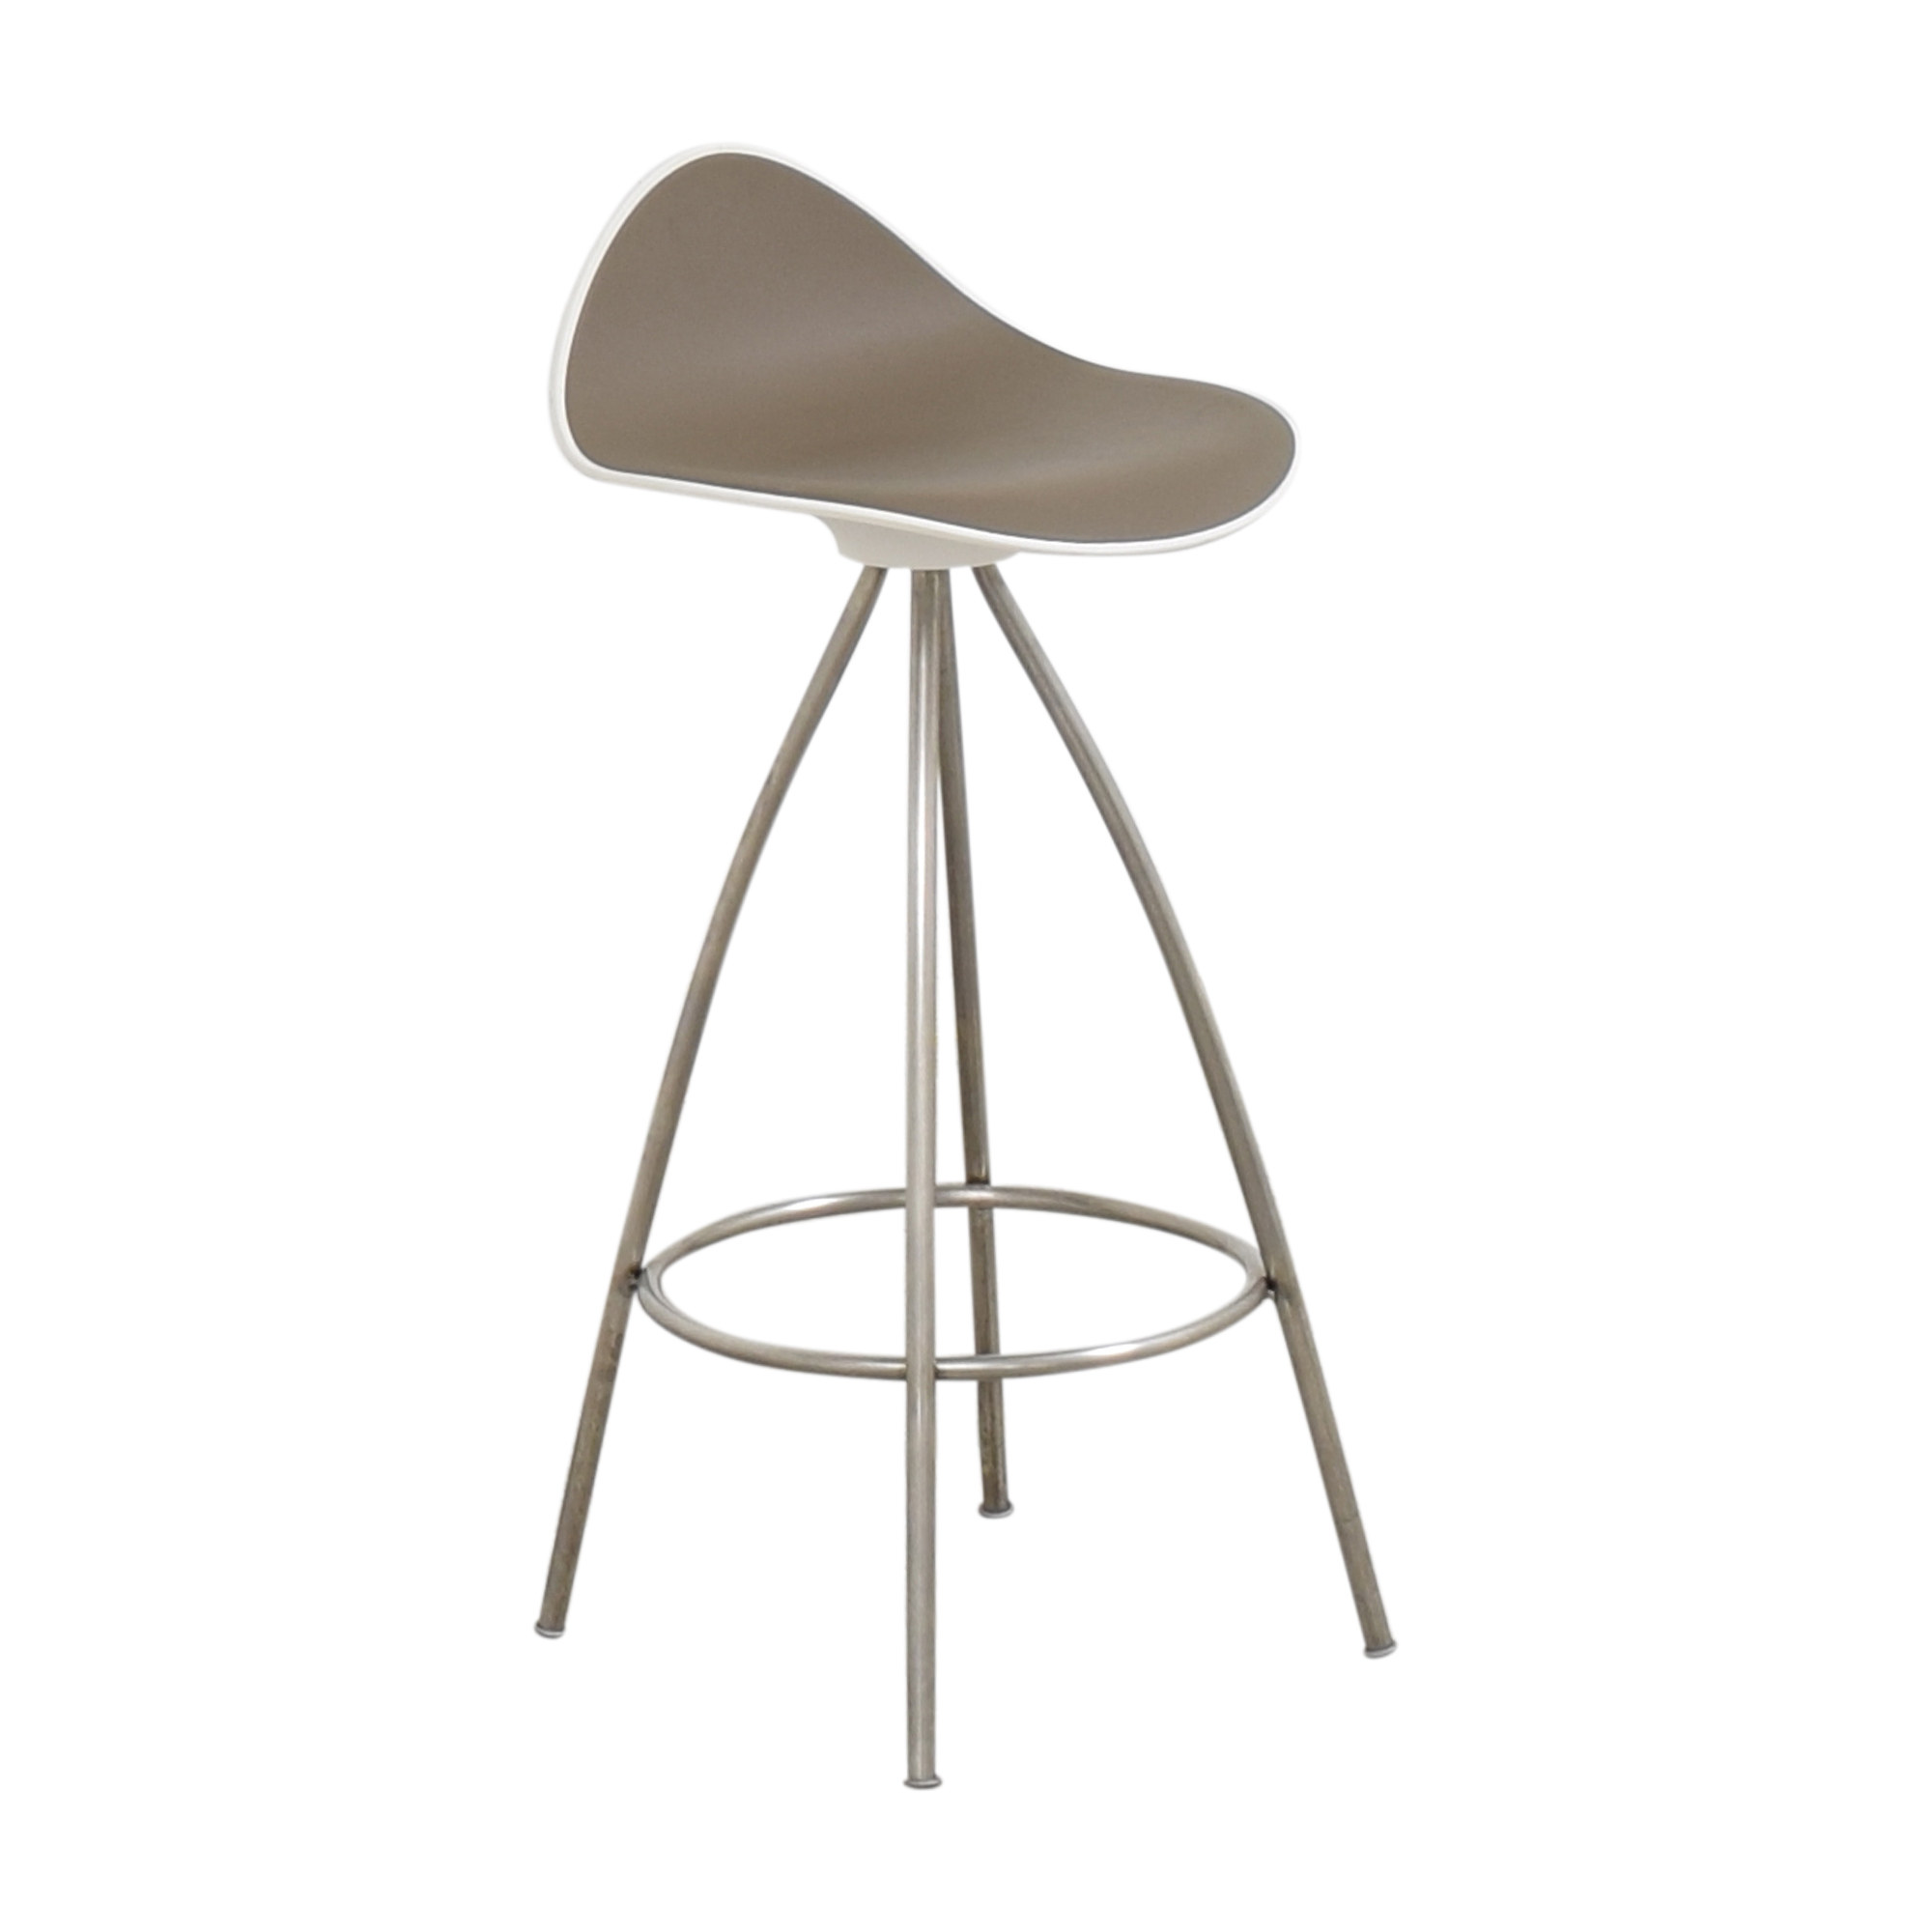 buy Design Within Reach Design Within Reach Onda Counter Stool online